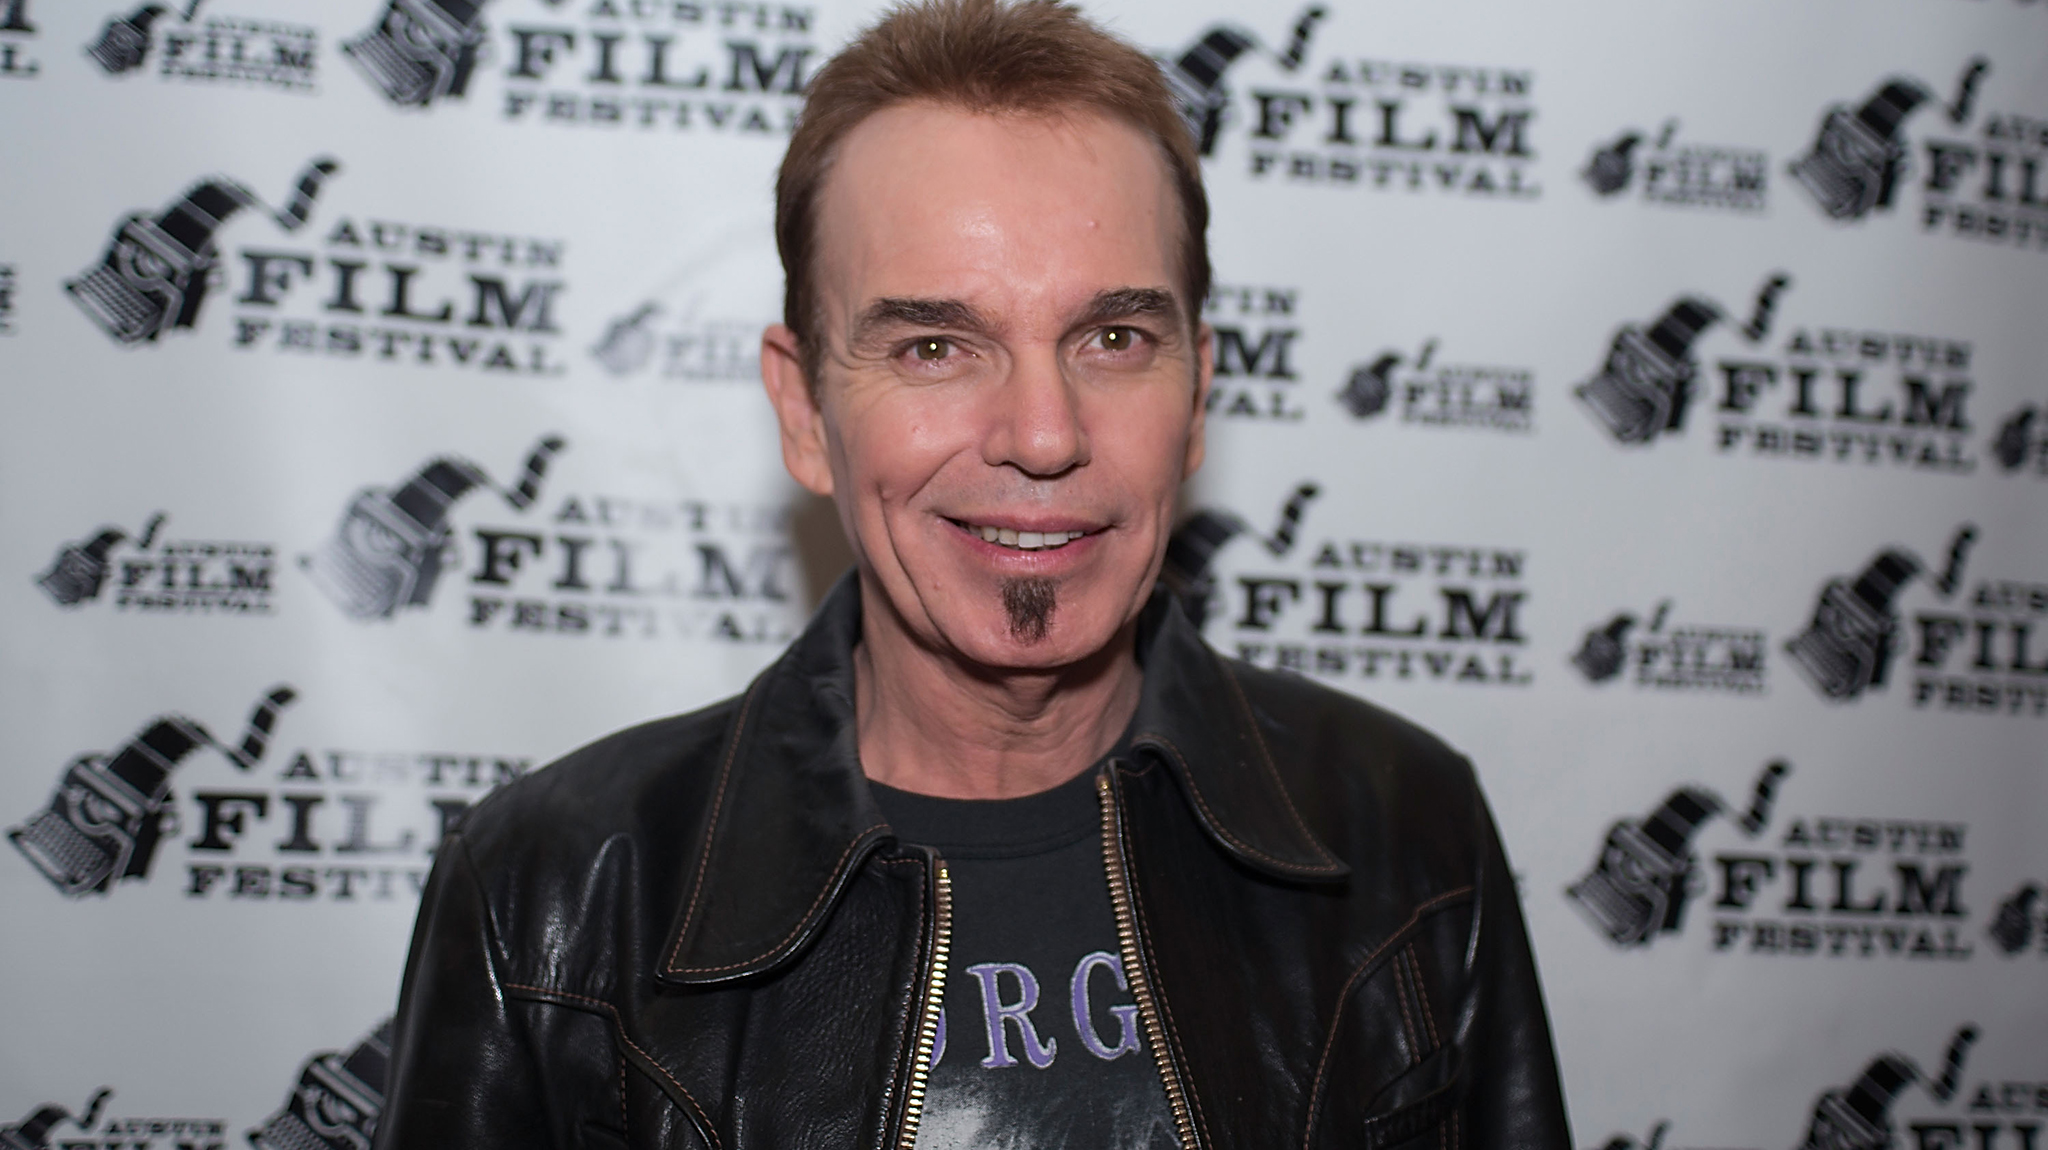 Billy Bob Thornton on why it's taken more than 10 years to direct again: 'I'm an actor' (Photo: Rick Kern/WireImage)